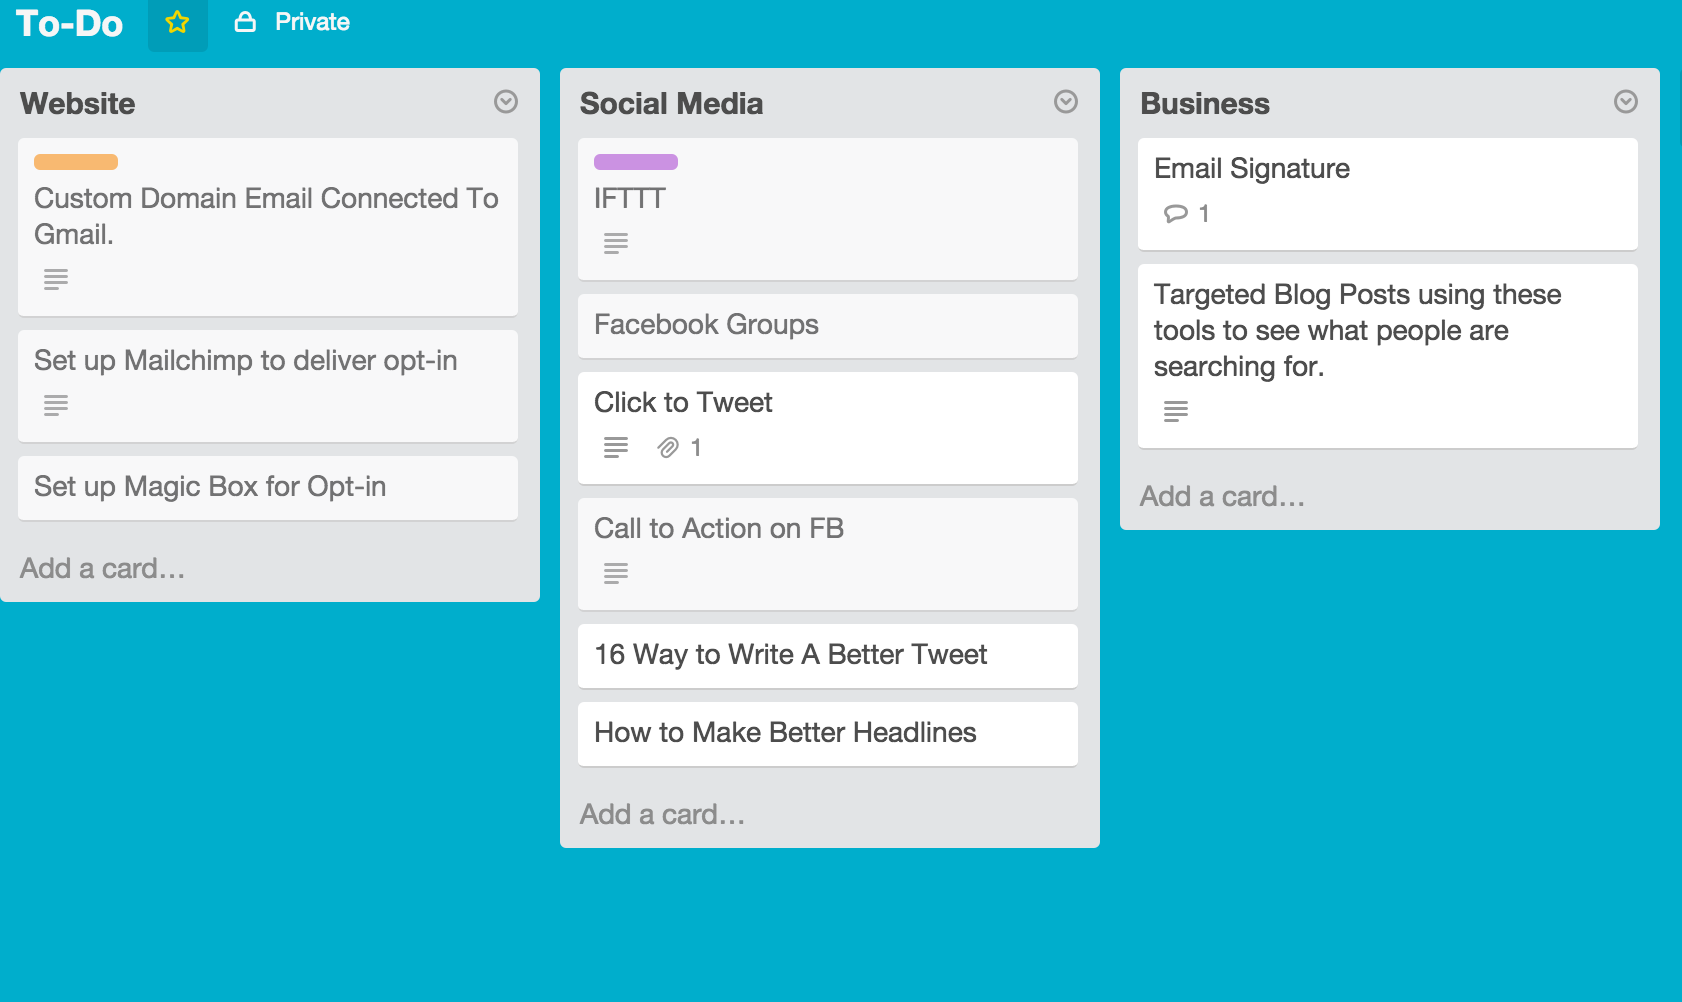 Using List to Categorize Tasks in Trello